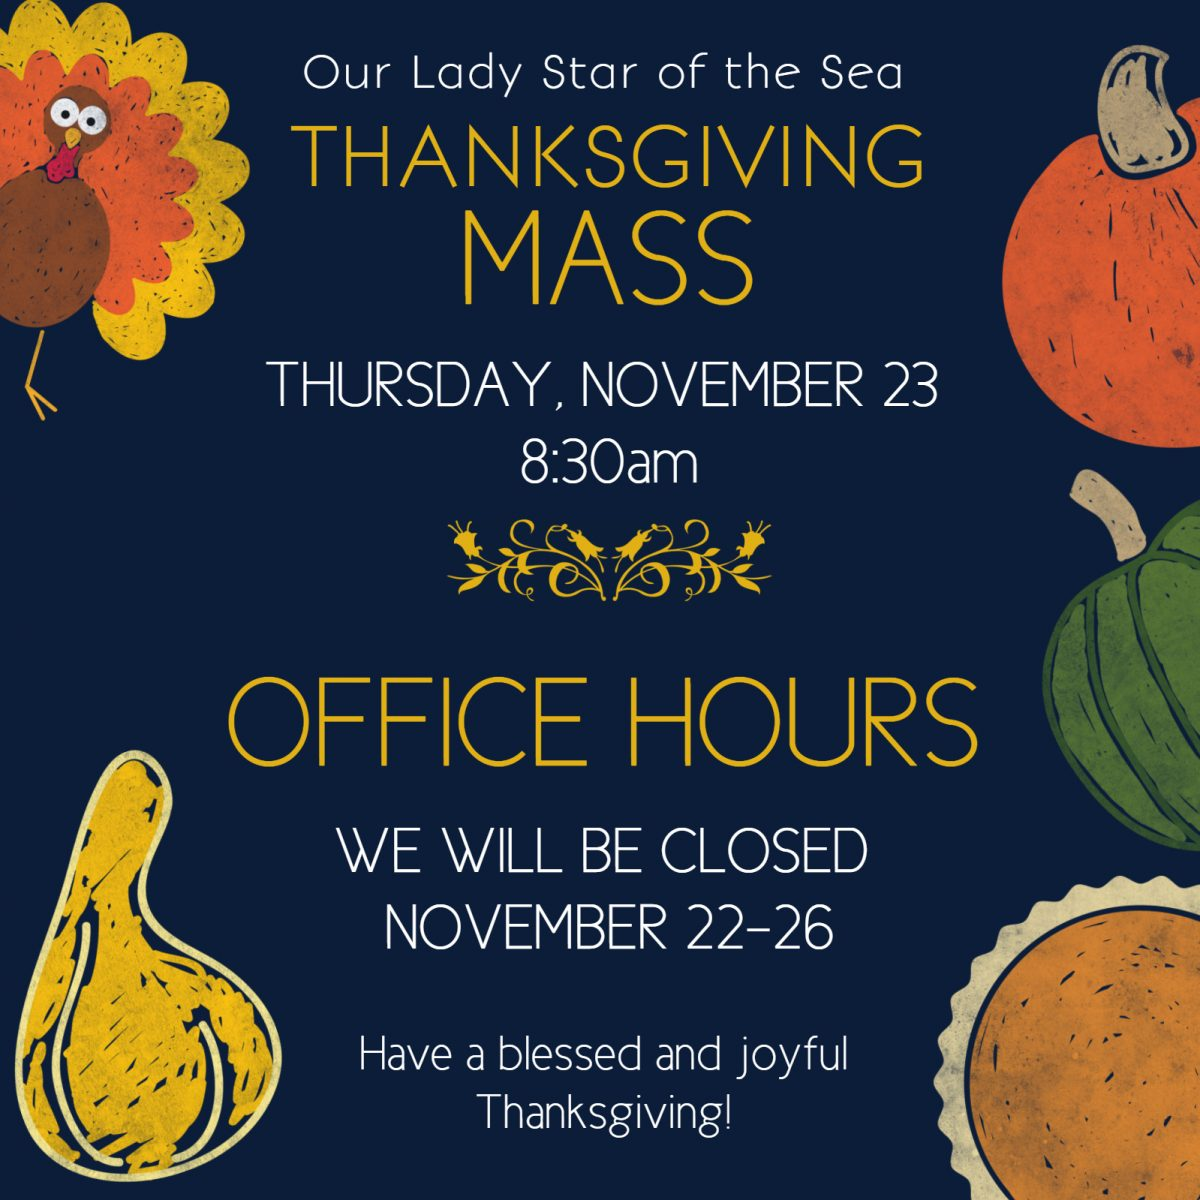 Thanksgiving Mass Times & Office Hours